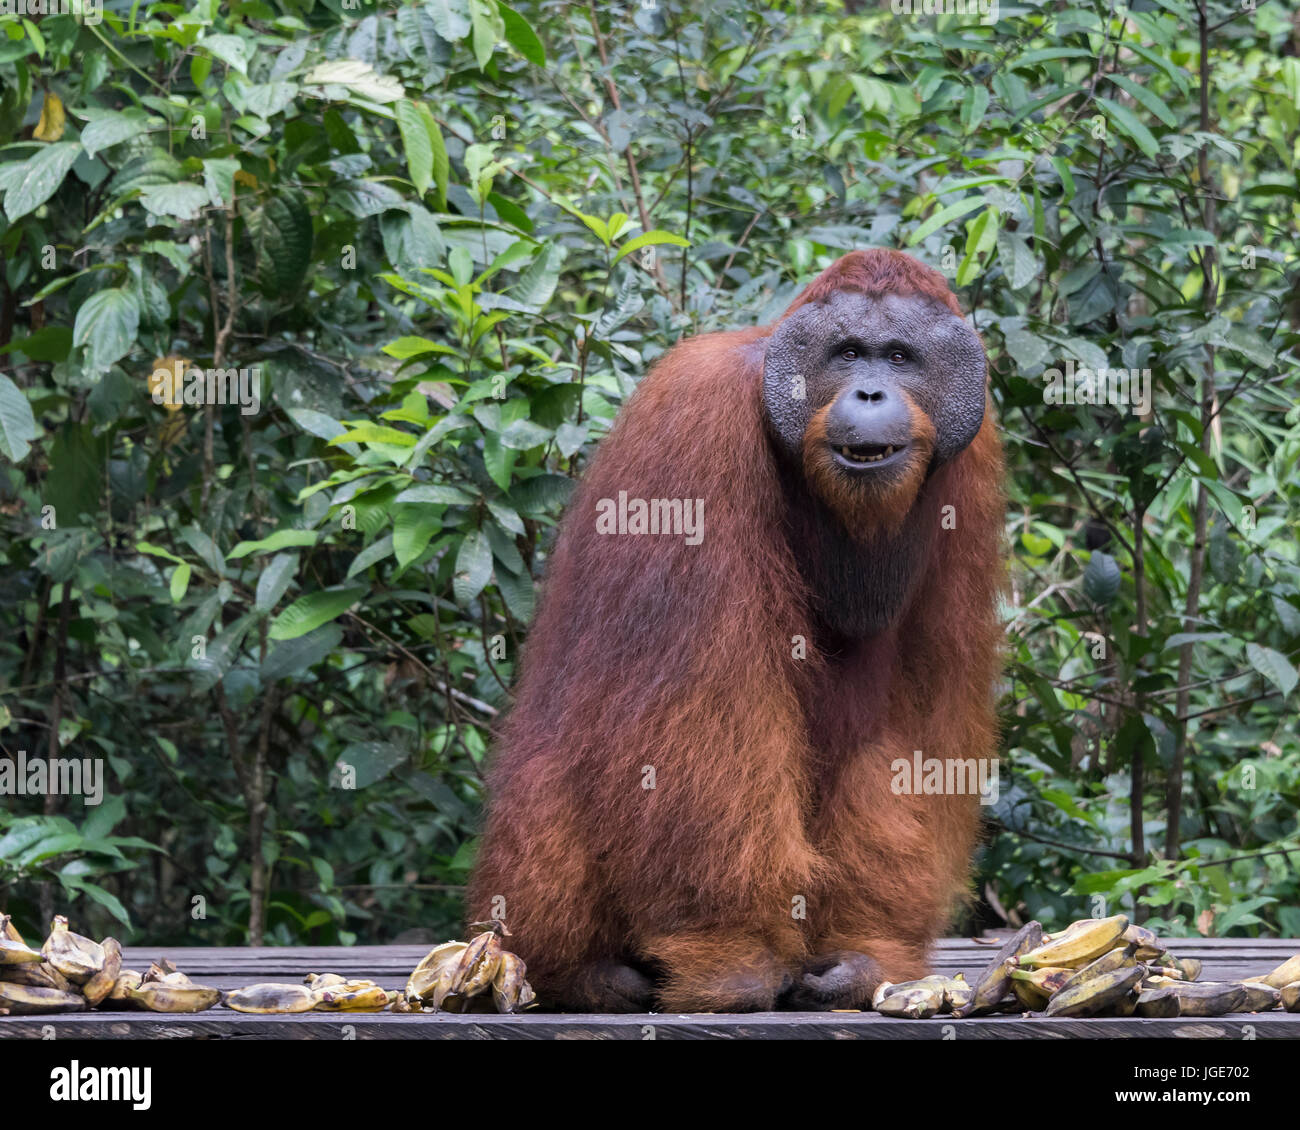 Flanged orangutan with a nice smile sitting for his portrait, Tanjung Puting National Park, Kalimantan, Indonesia - Stock Image